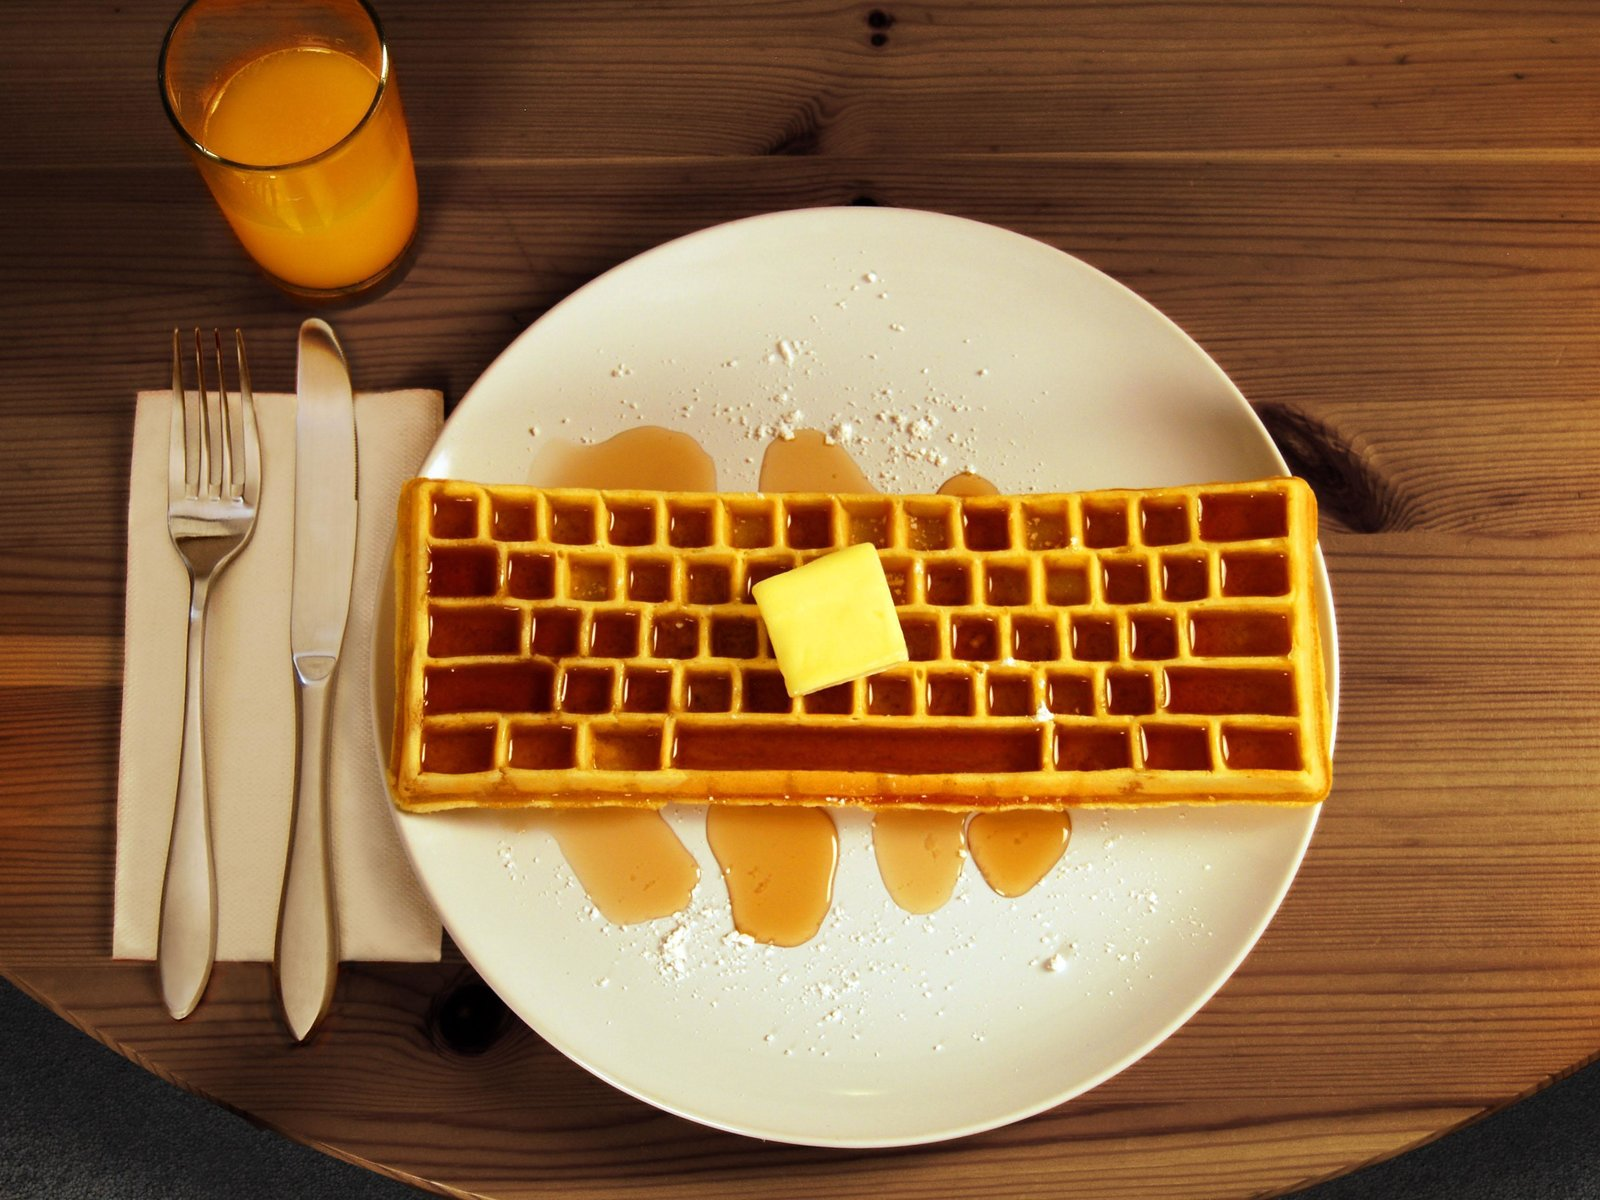 Photo 1 of 1 in The Keyboard Waffle Iron